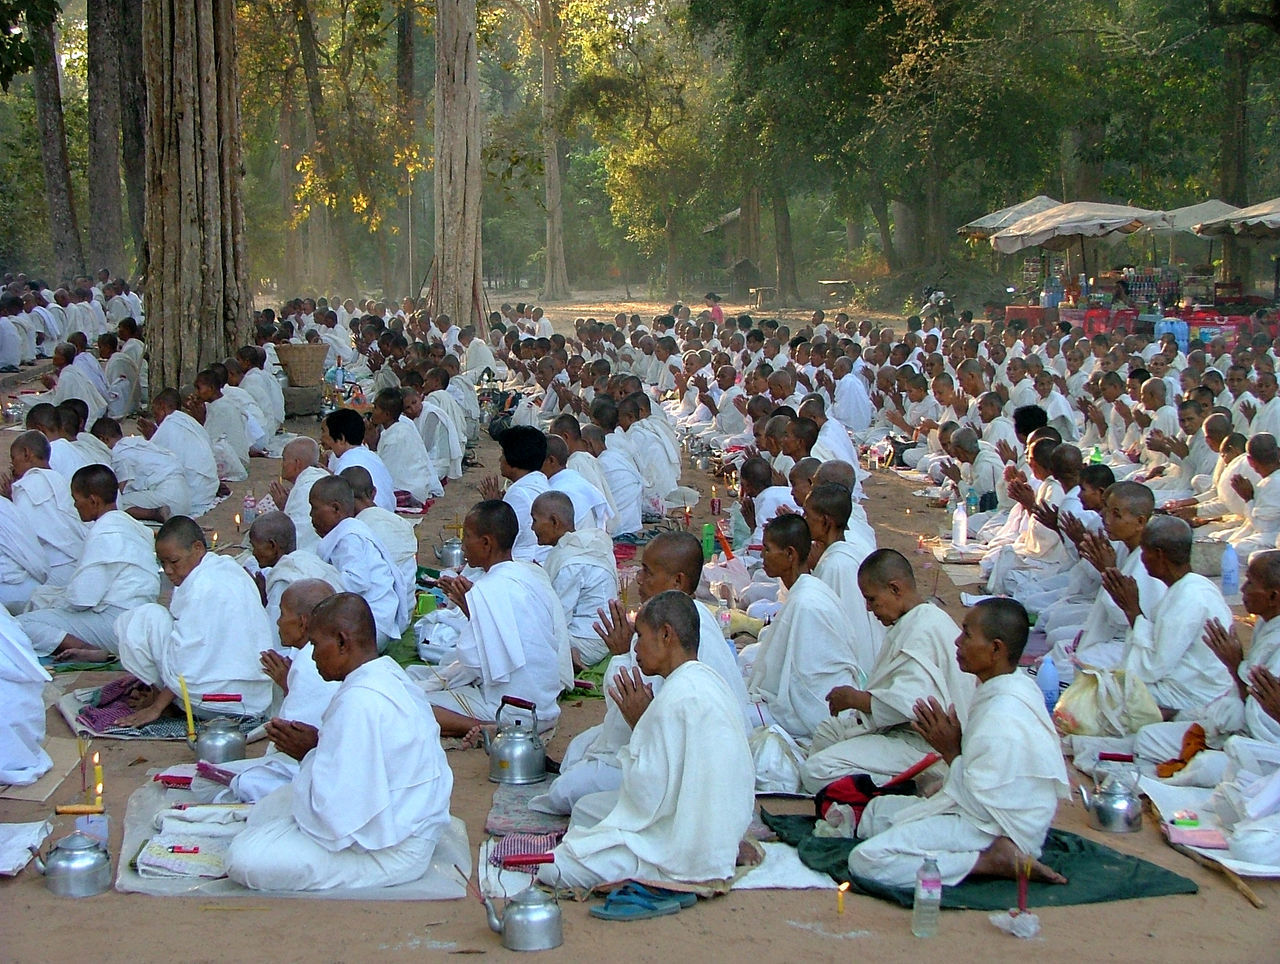 Abundance Budda Buddist Buddist Monks. Day In A Row Many Mixed Age Range Monksa Outdoors Outdoors Photograpghy  Park Relaxation Religion.  Sitting Sunshine Tree White Robes White.